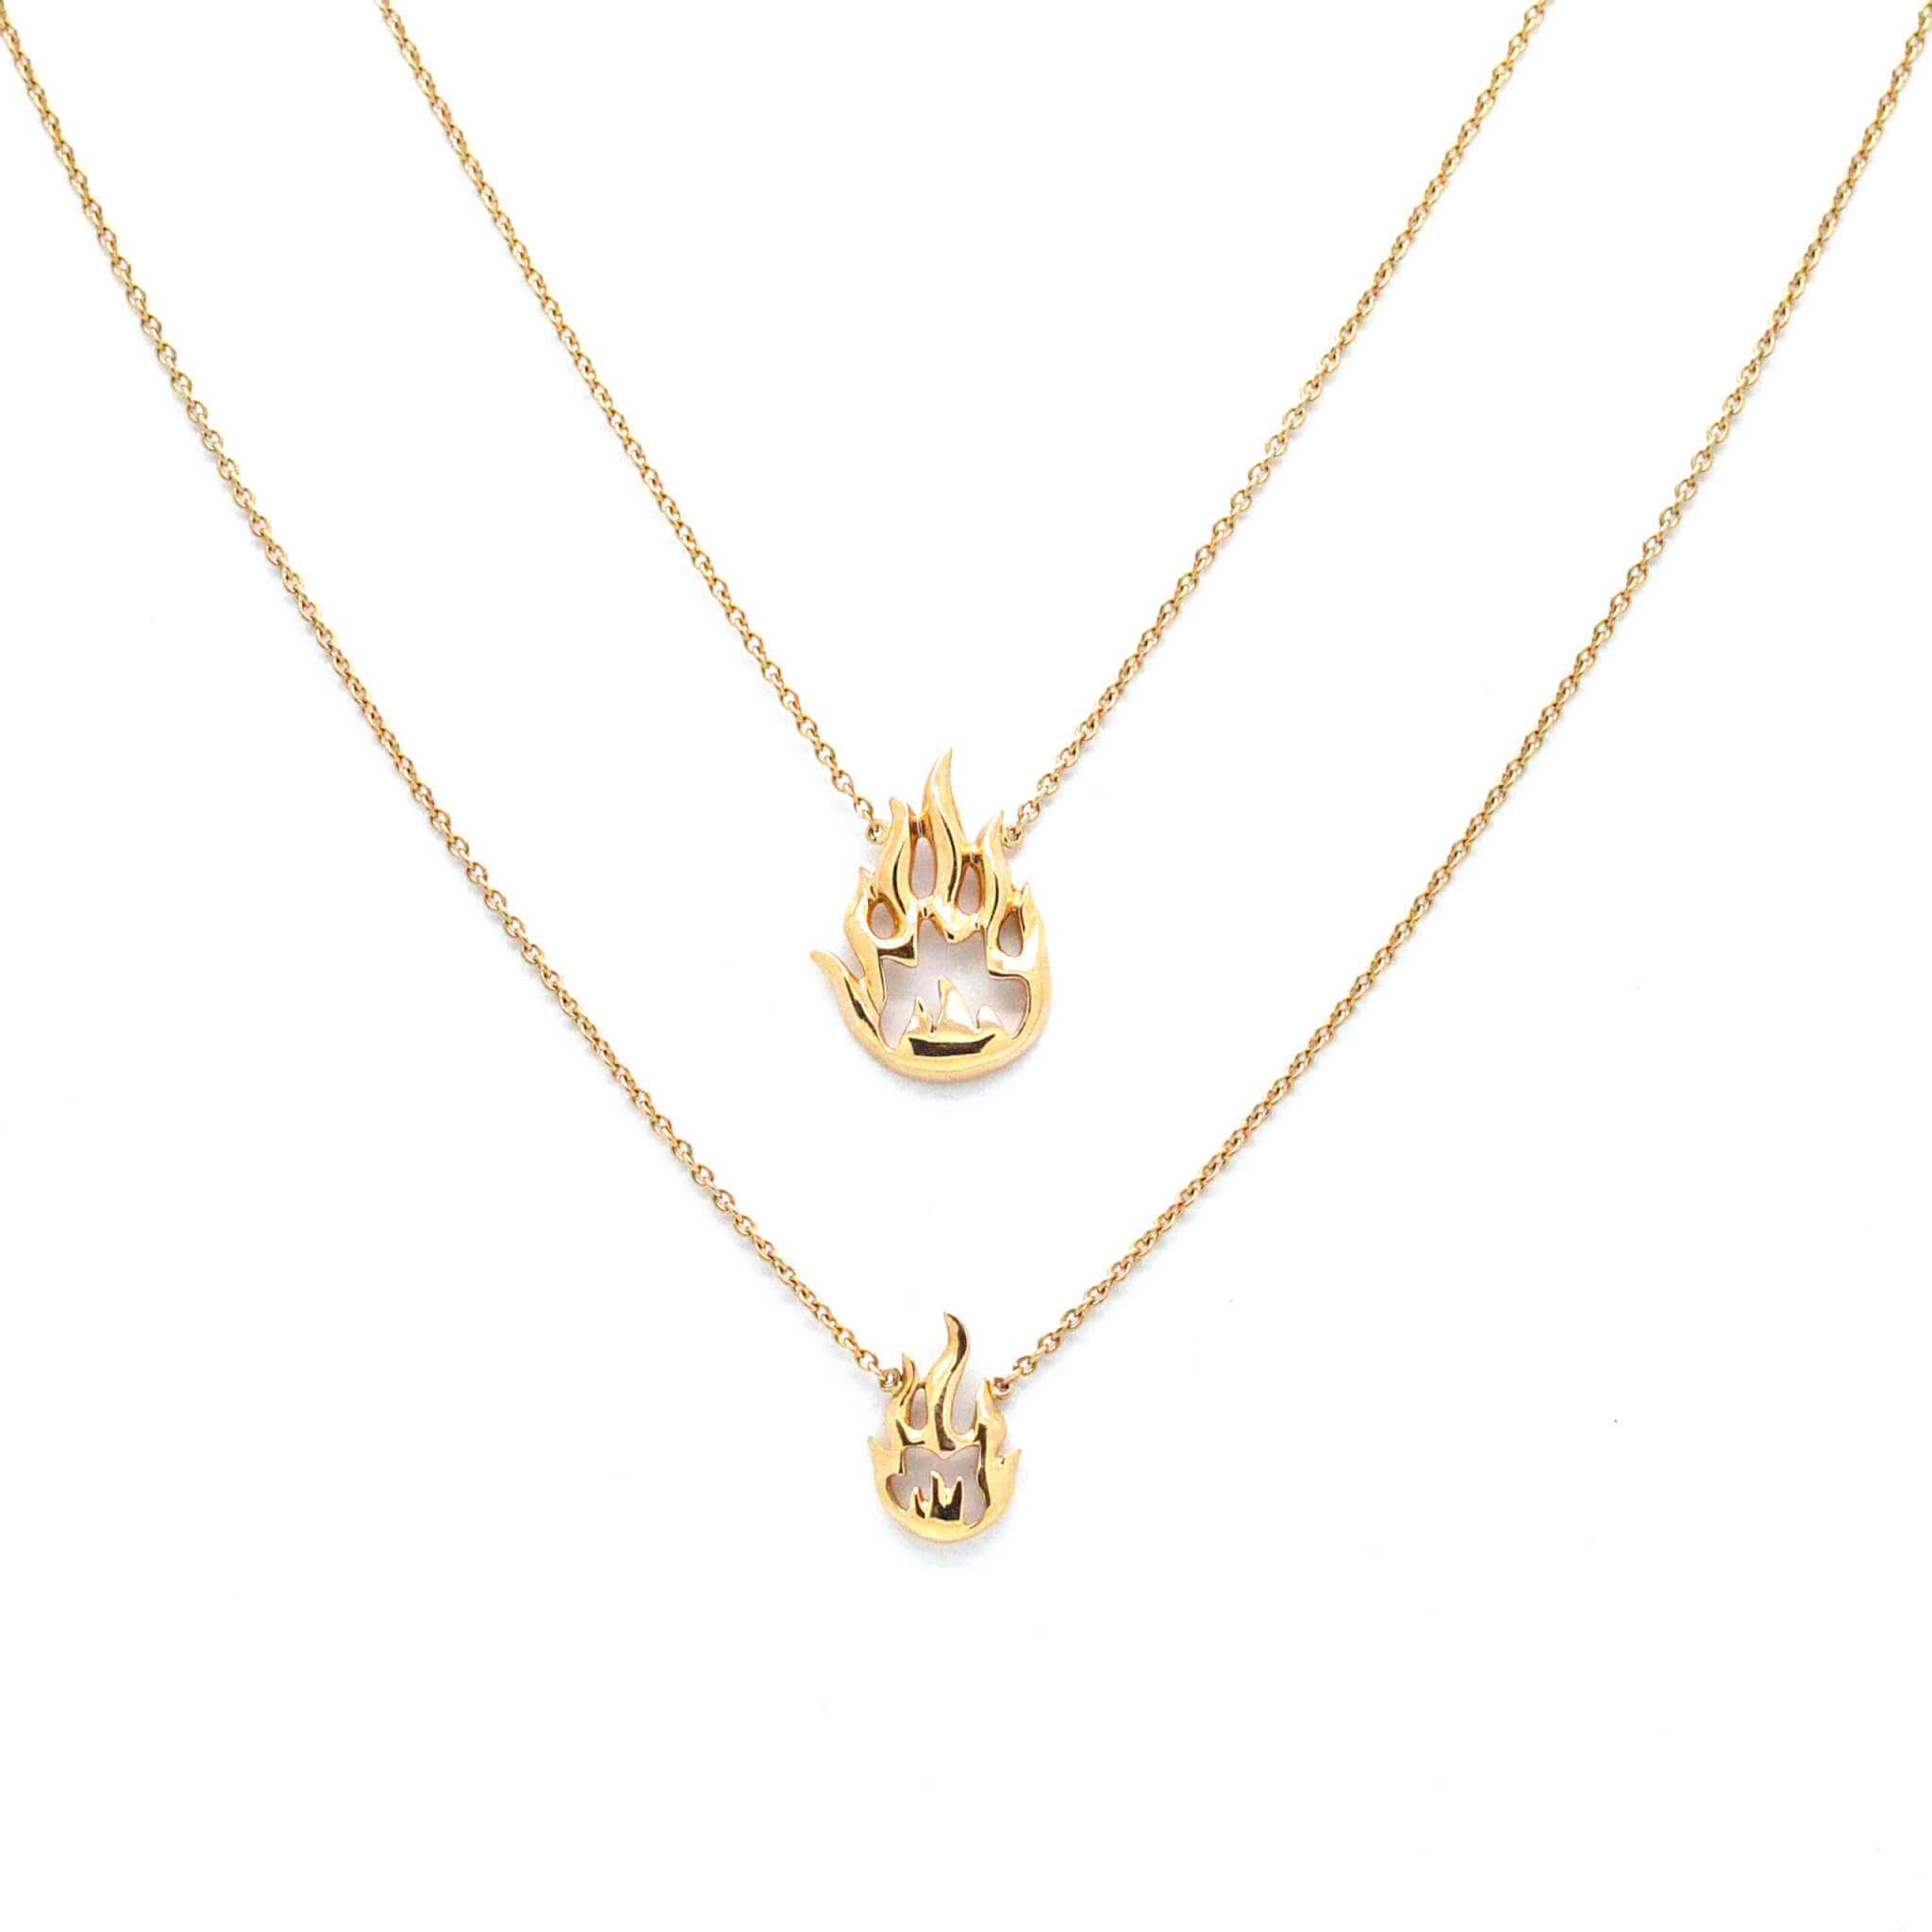 Flamme collier tout or